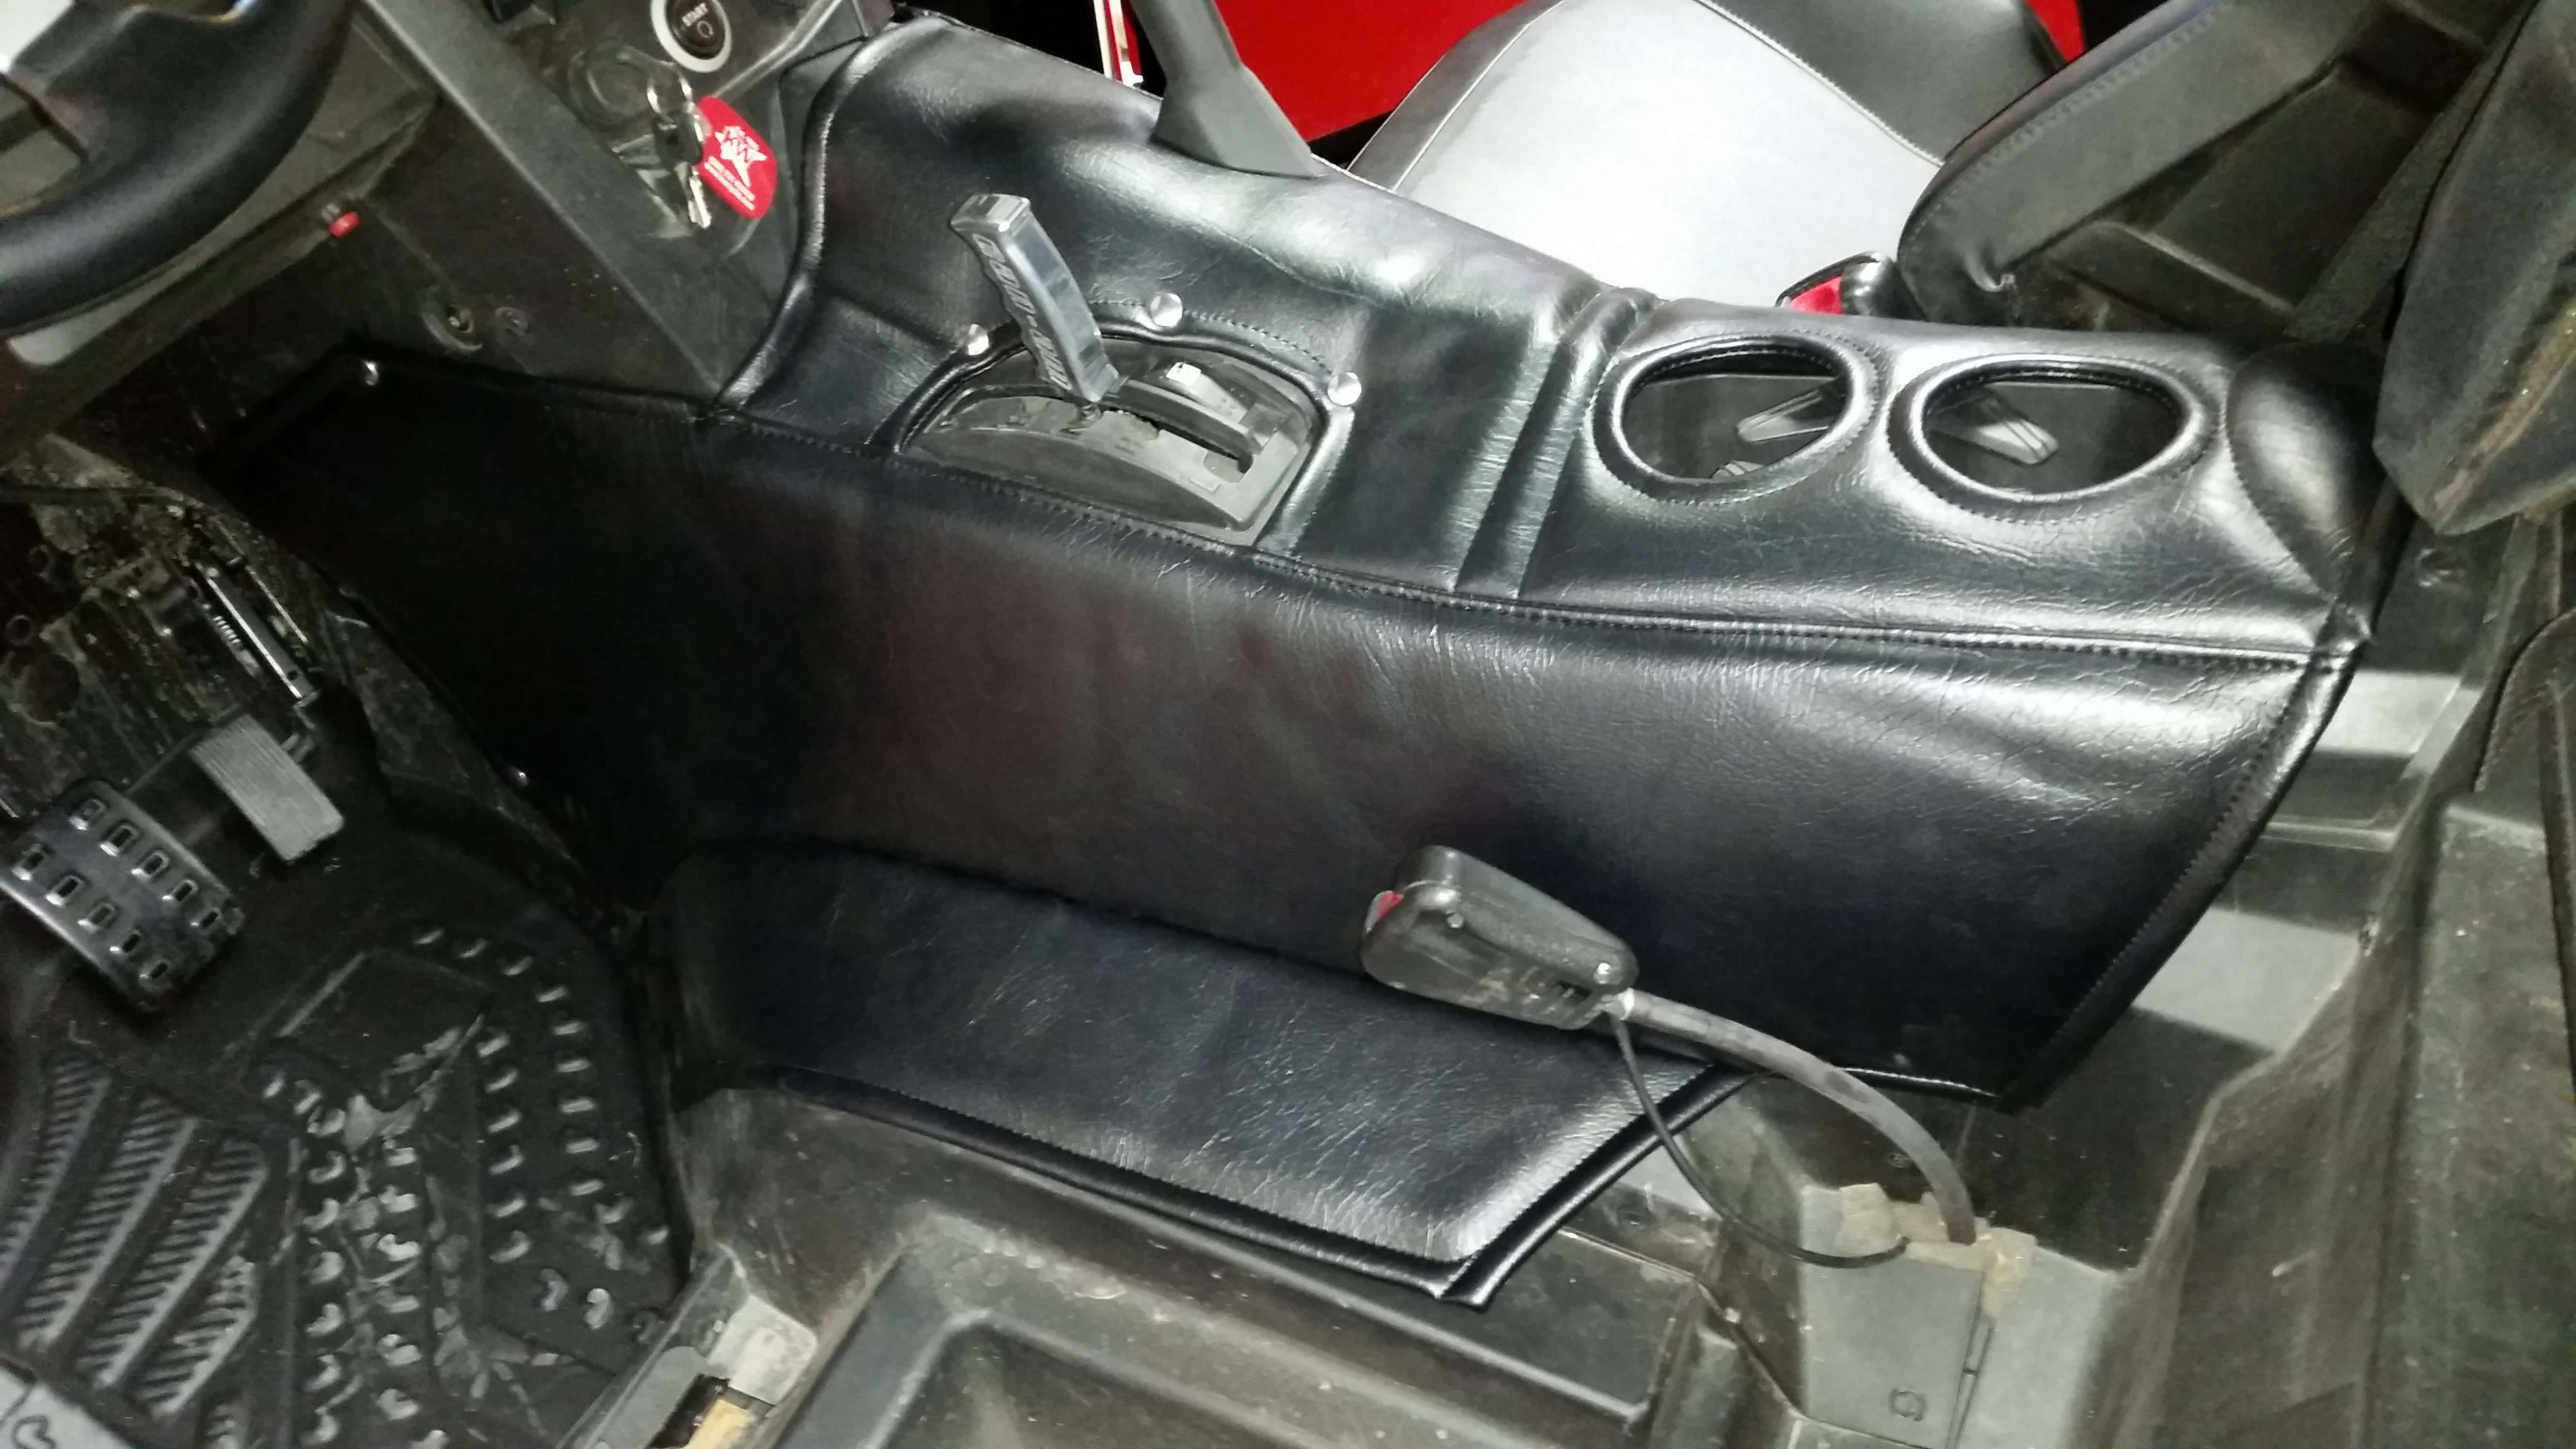 Insulated console cover update - Page 11 - Can-Am